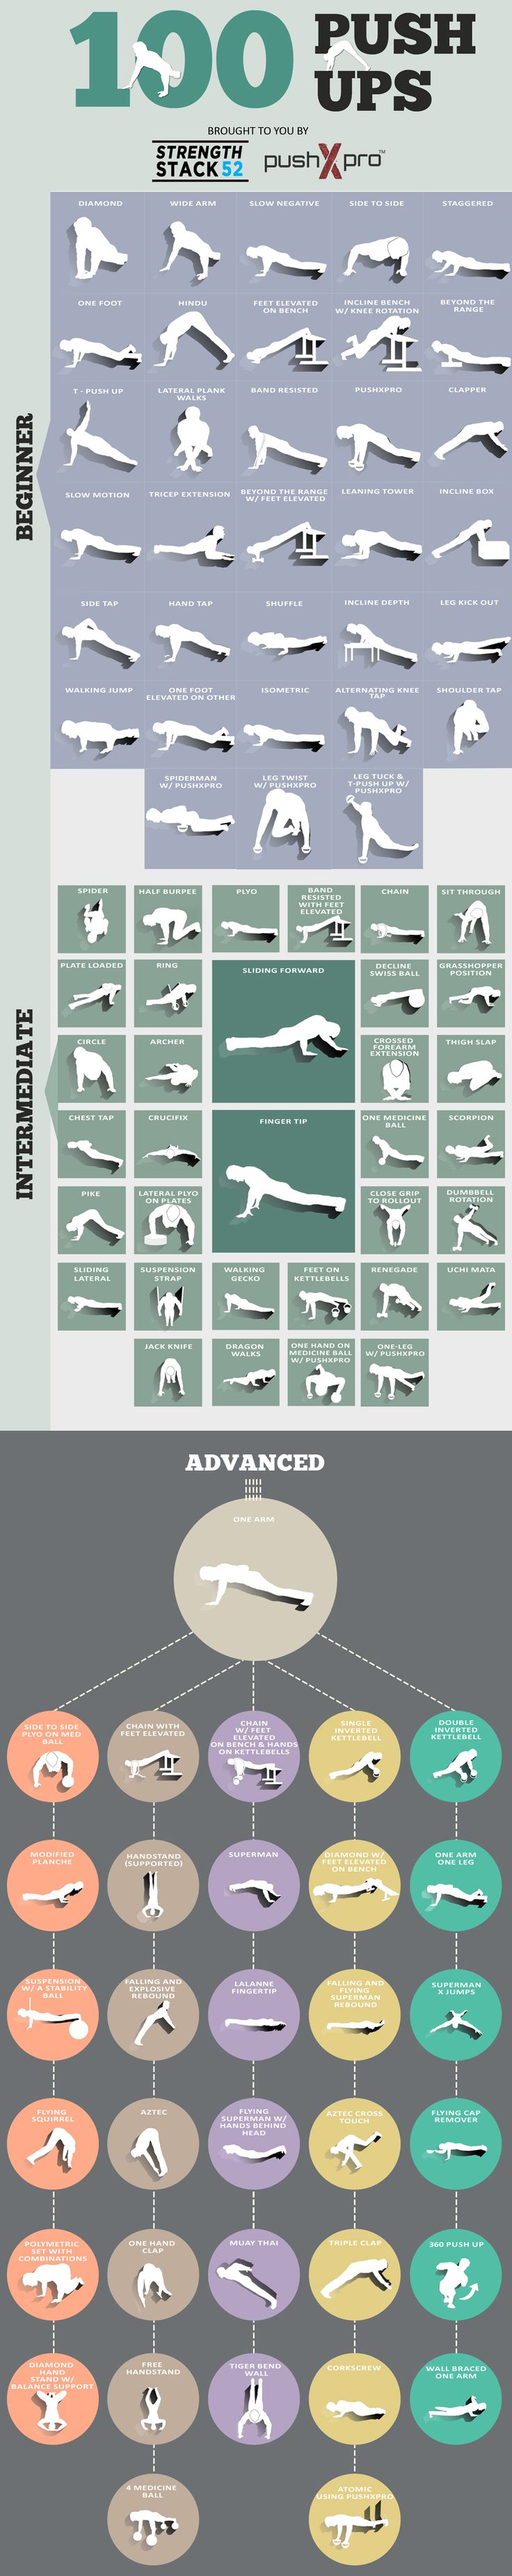 100 push up variations